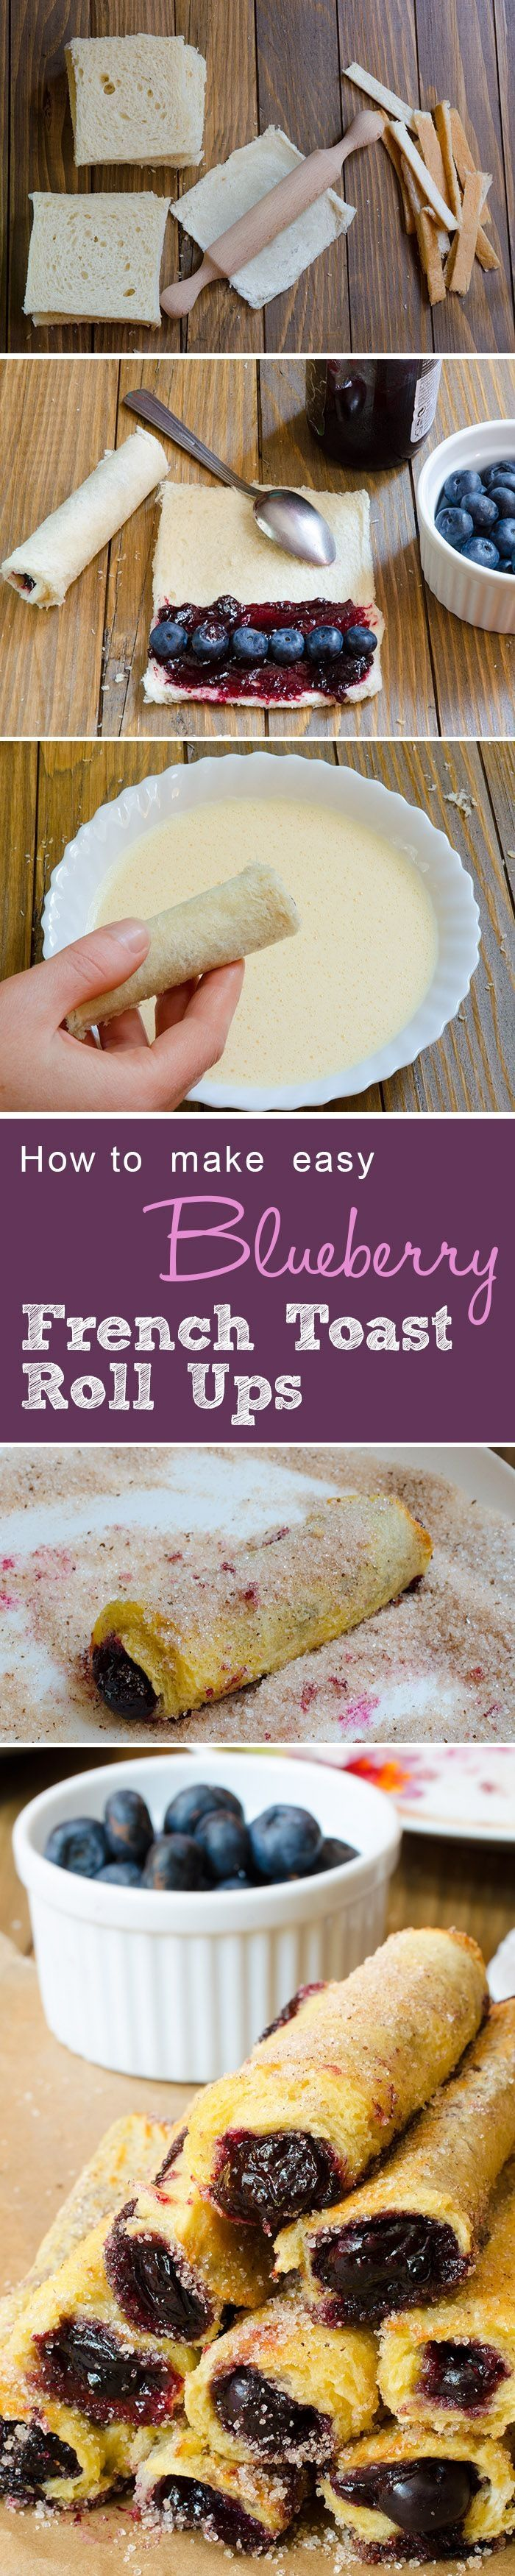 #French #Toast #blueberry #rolls #great #idea #cooking #breakfast #taesty #delicious